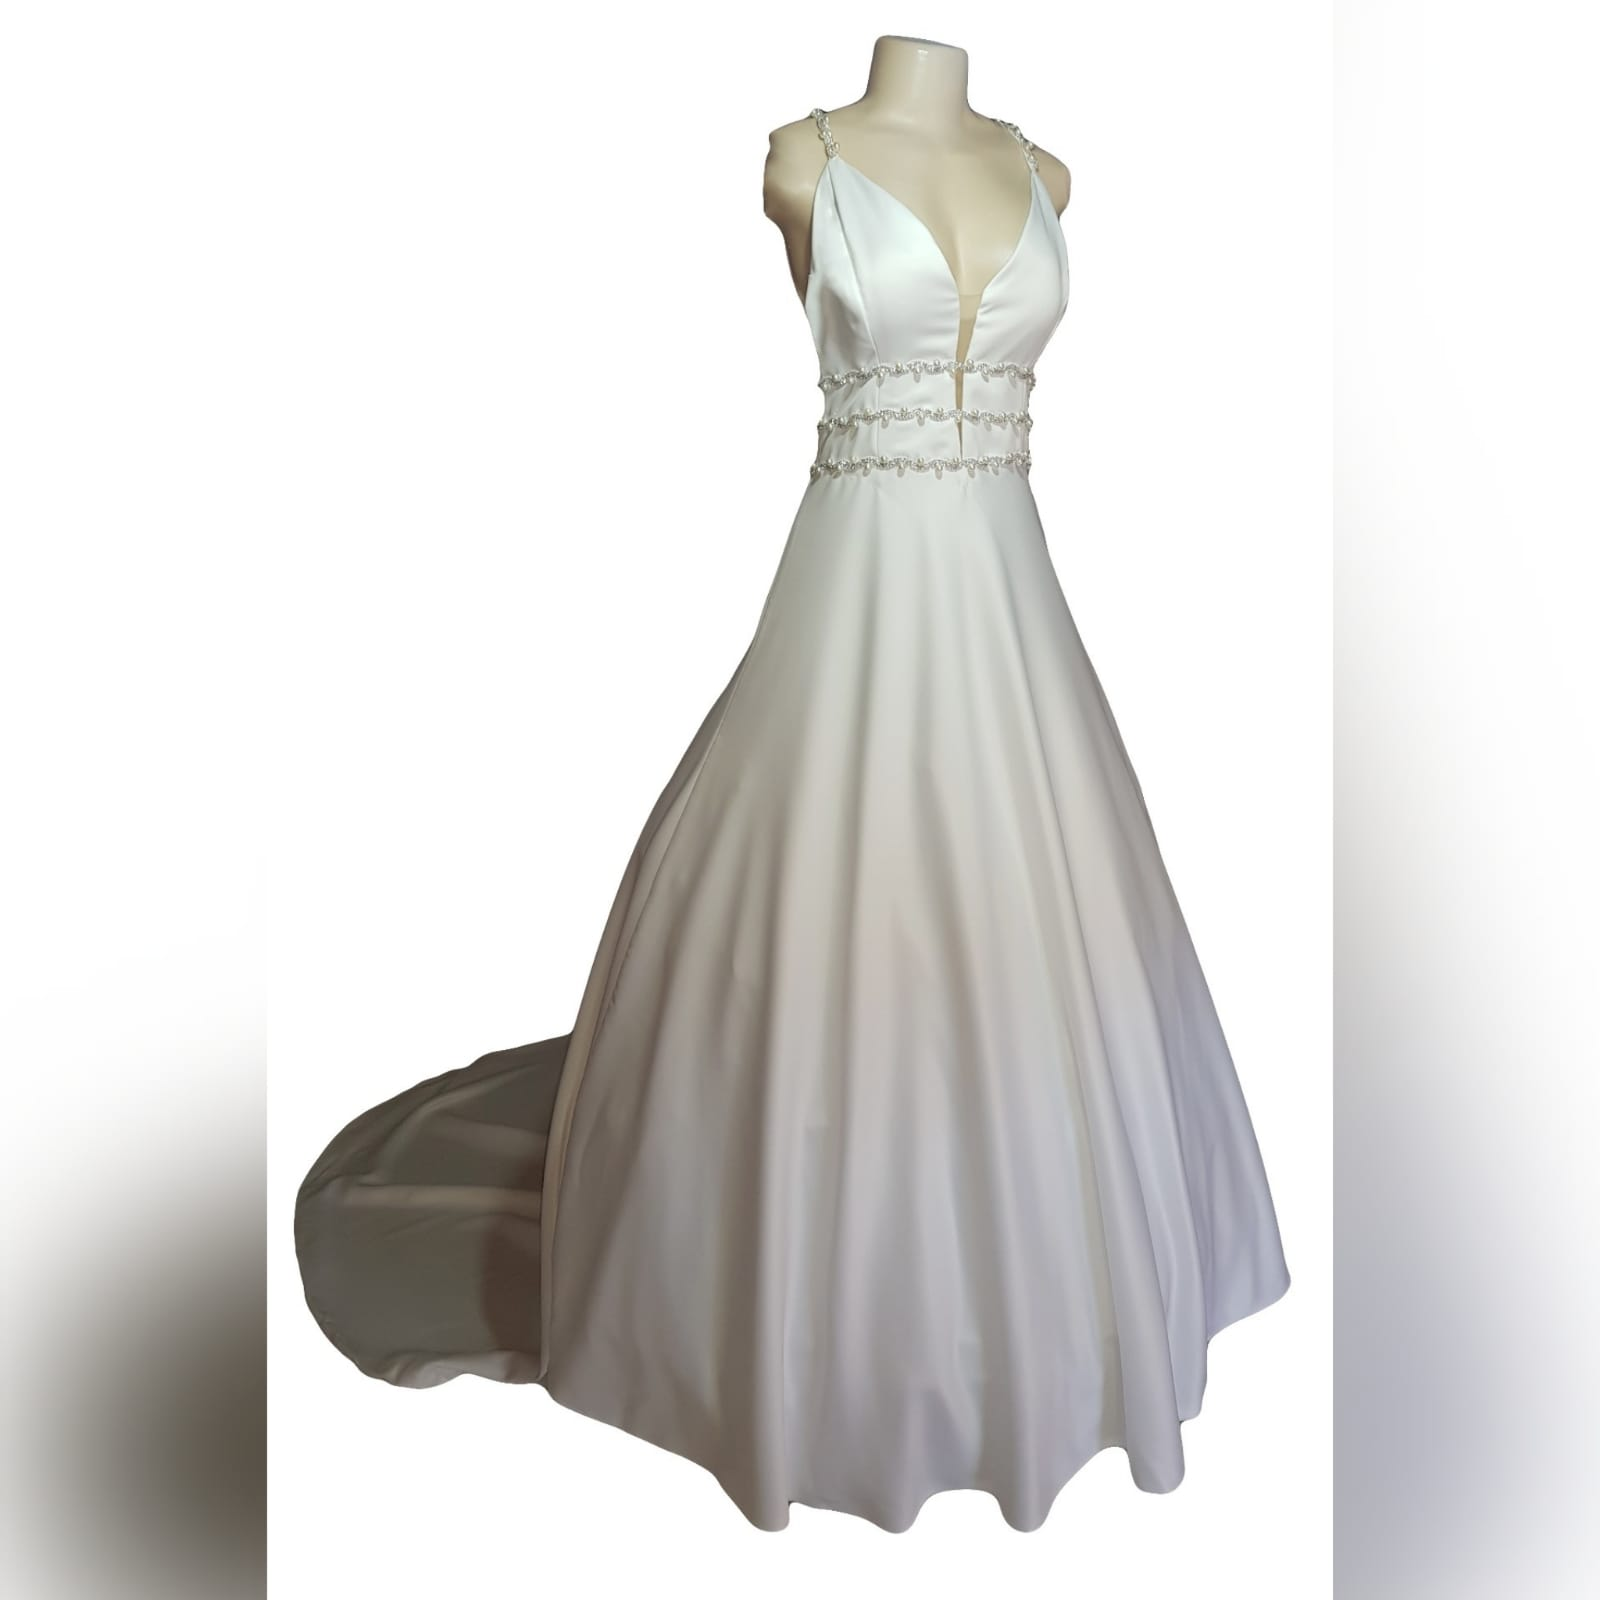 A line brides dress in a pearl satin fabric 19 this elegant wedding dress was designed and made for a wedding in brazil an a-line brides dress in a pearl satin fabric, with an illusion deep neckline and v open back. Detailed with diamante, pearls and buttons. A wide train that hooks up. And a brazilian traditional embroidered inside hem with the bridesmaid's names.